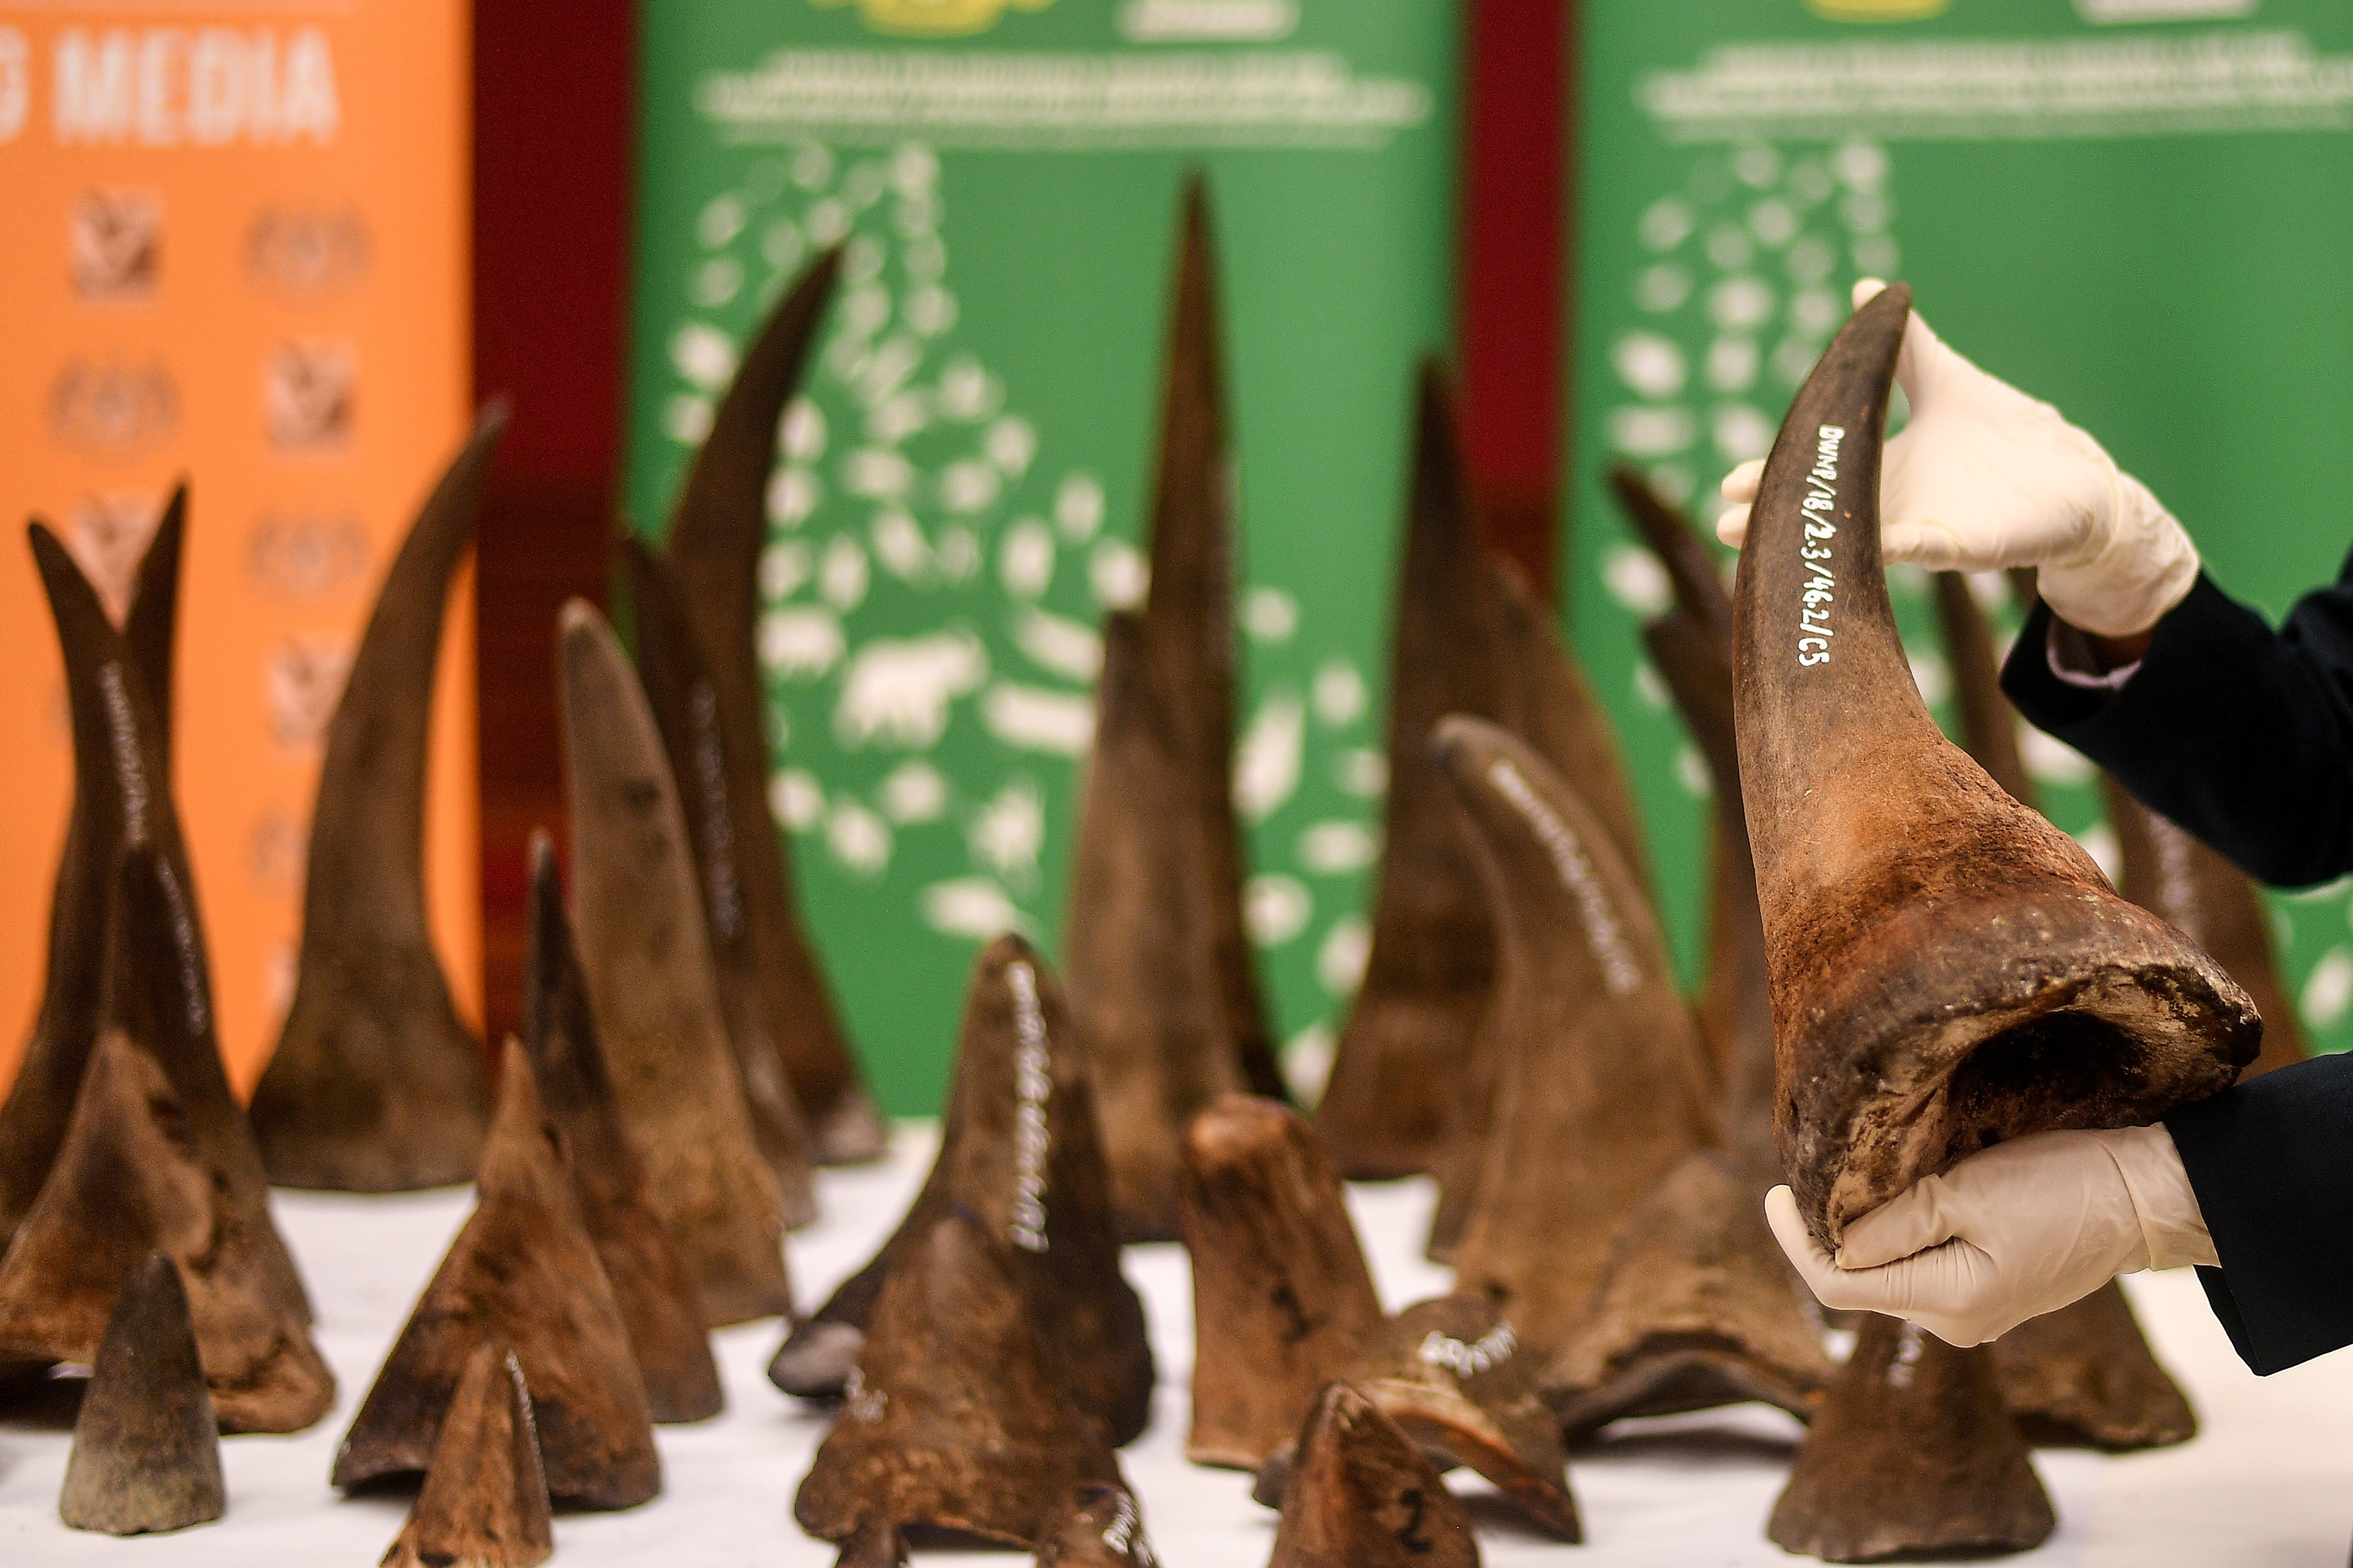 A Malaysian Wildlife official displays seized rhino horns and other animal parts at the Department of Wildlife and National Parks headquarters in Kuala Lumpur on Aug. 20, 2018.